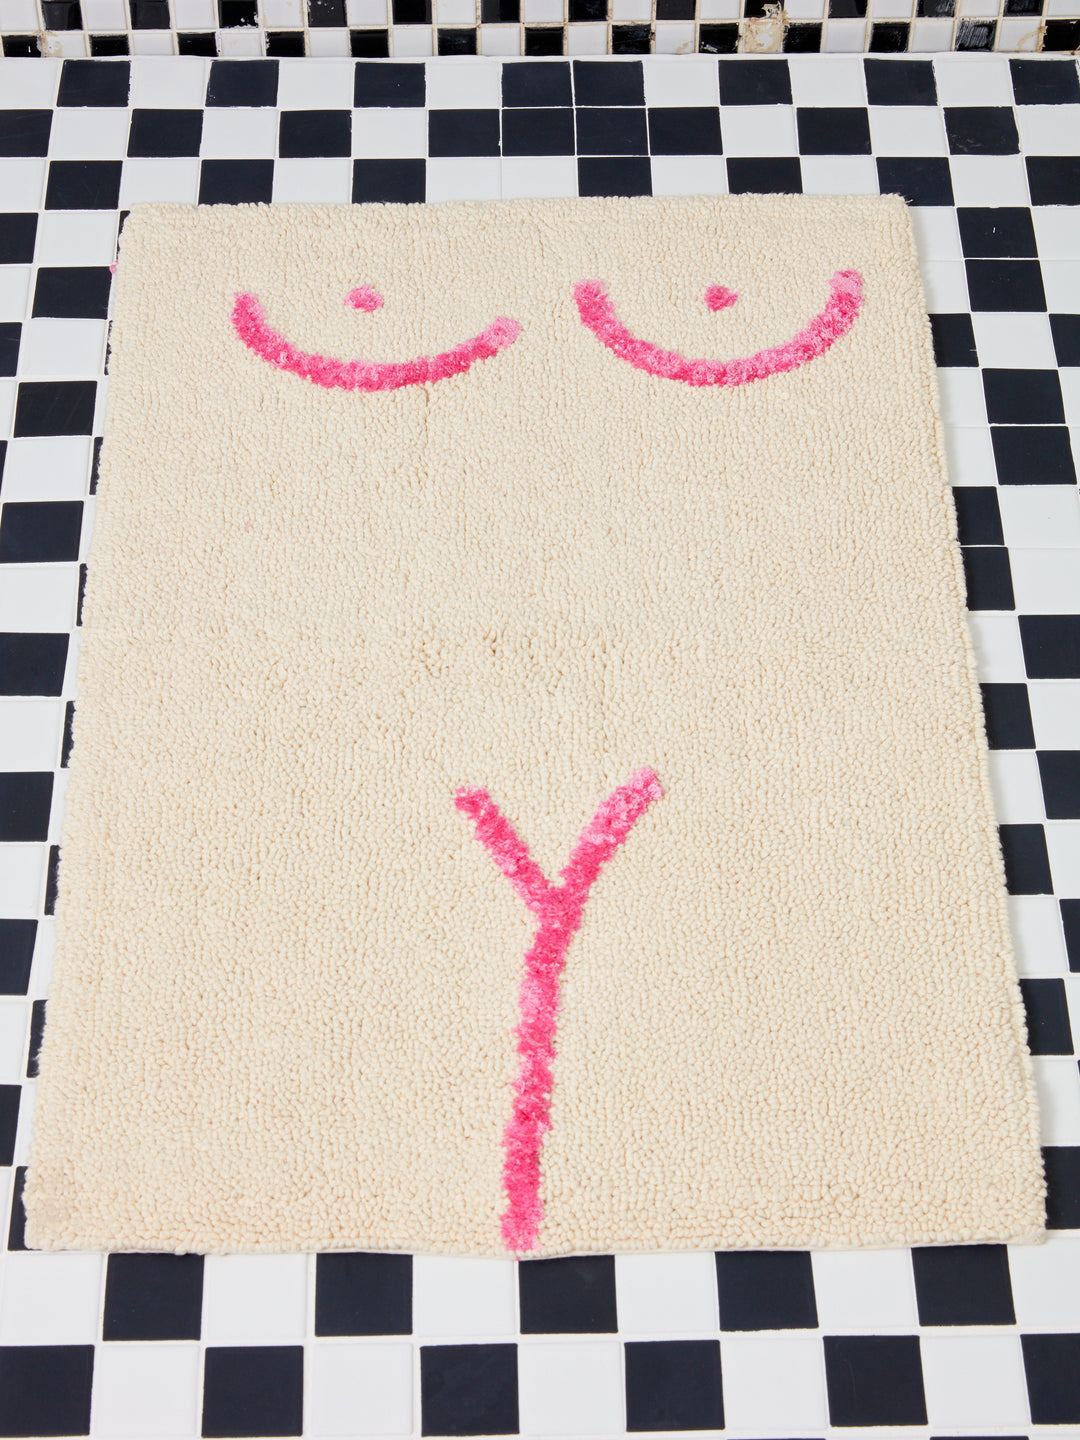 Private Parts Bath Mat In Pink Coming Soon